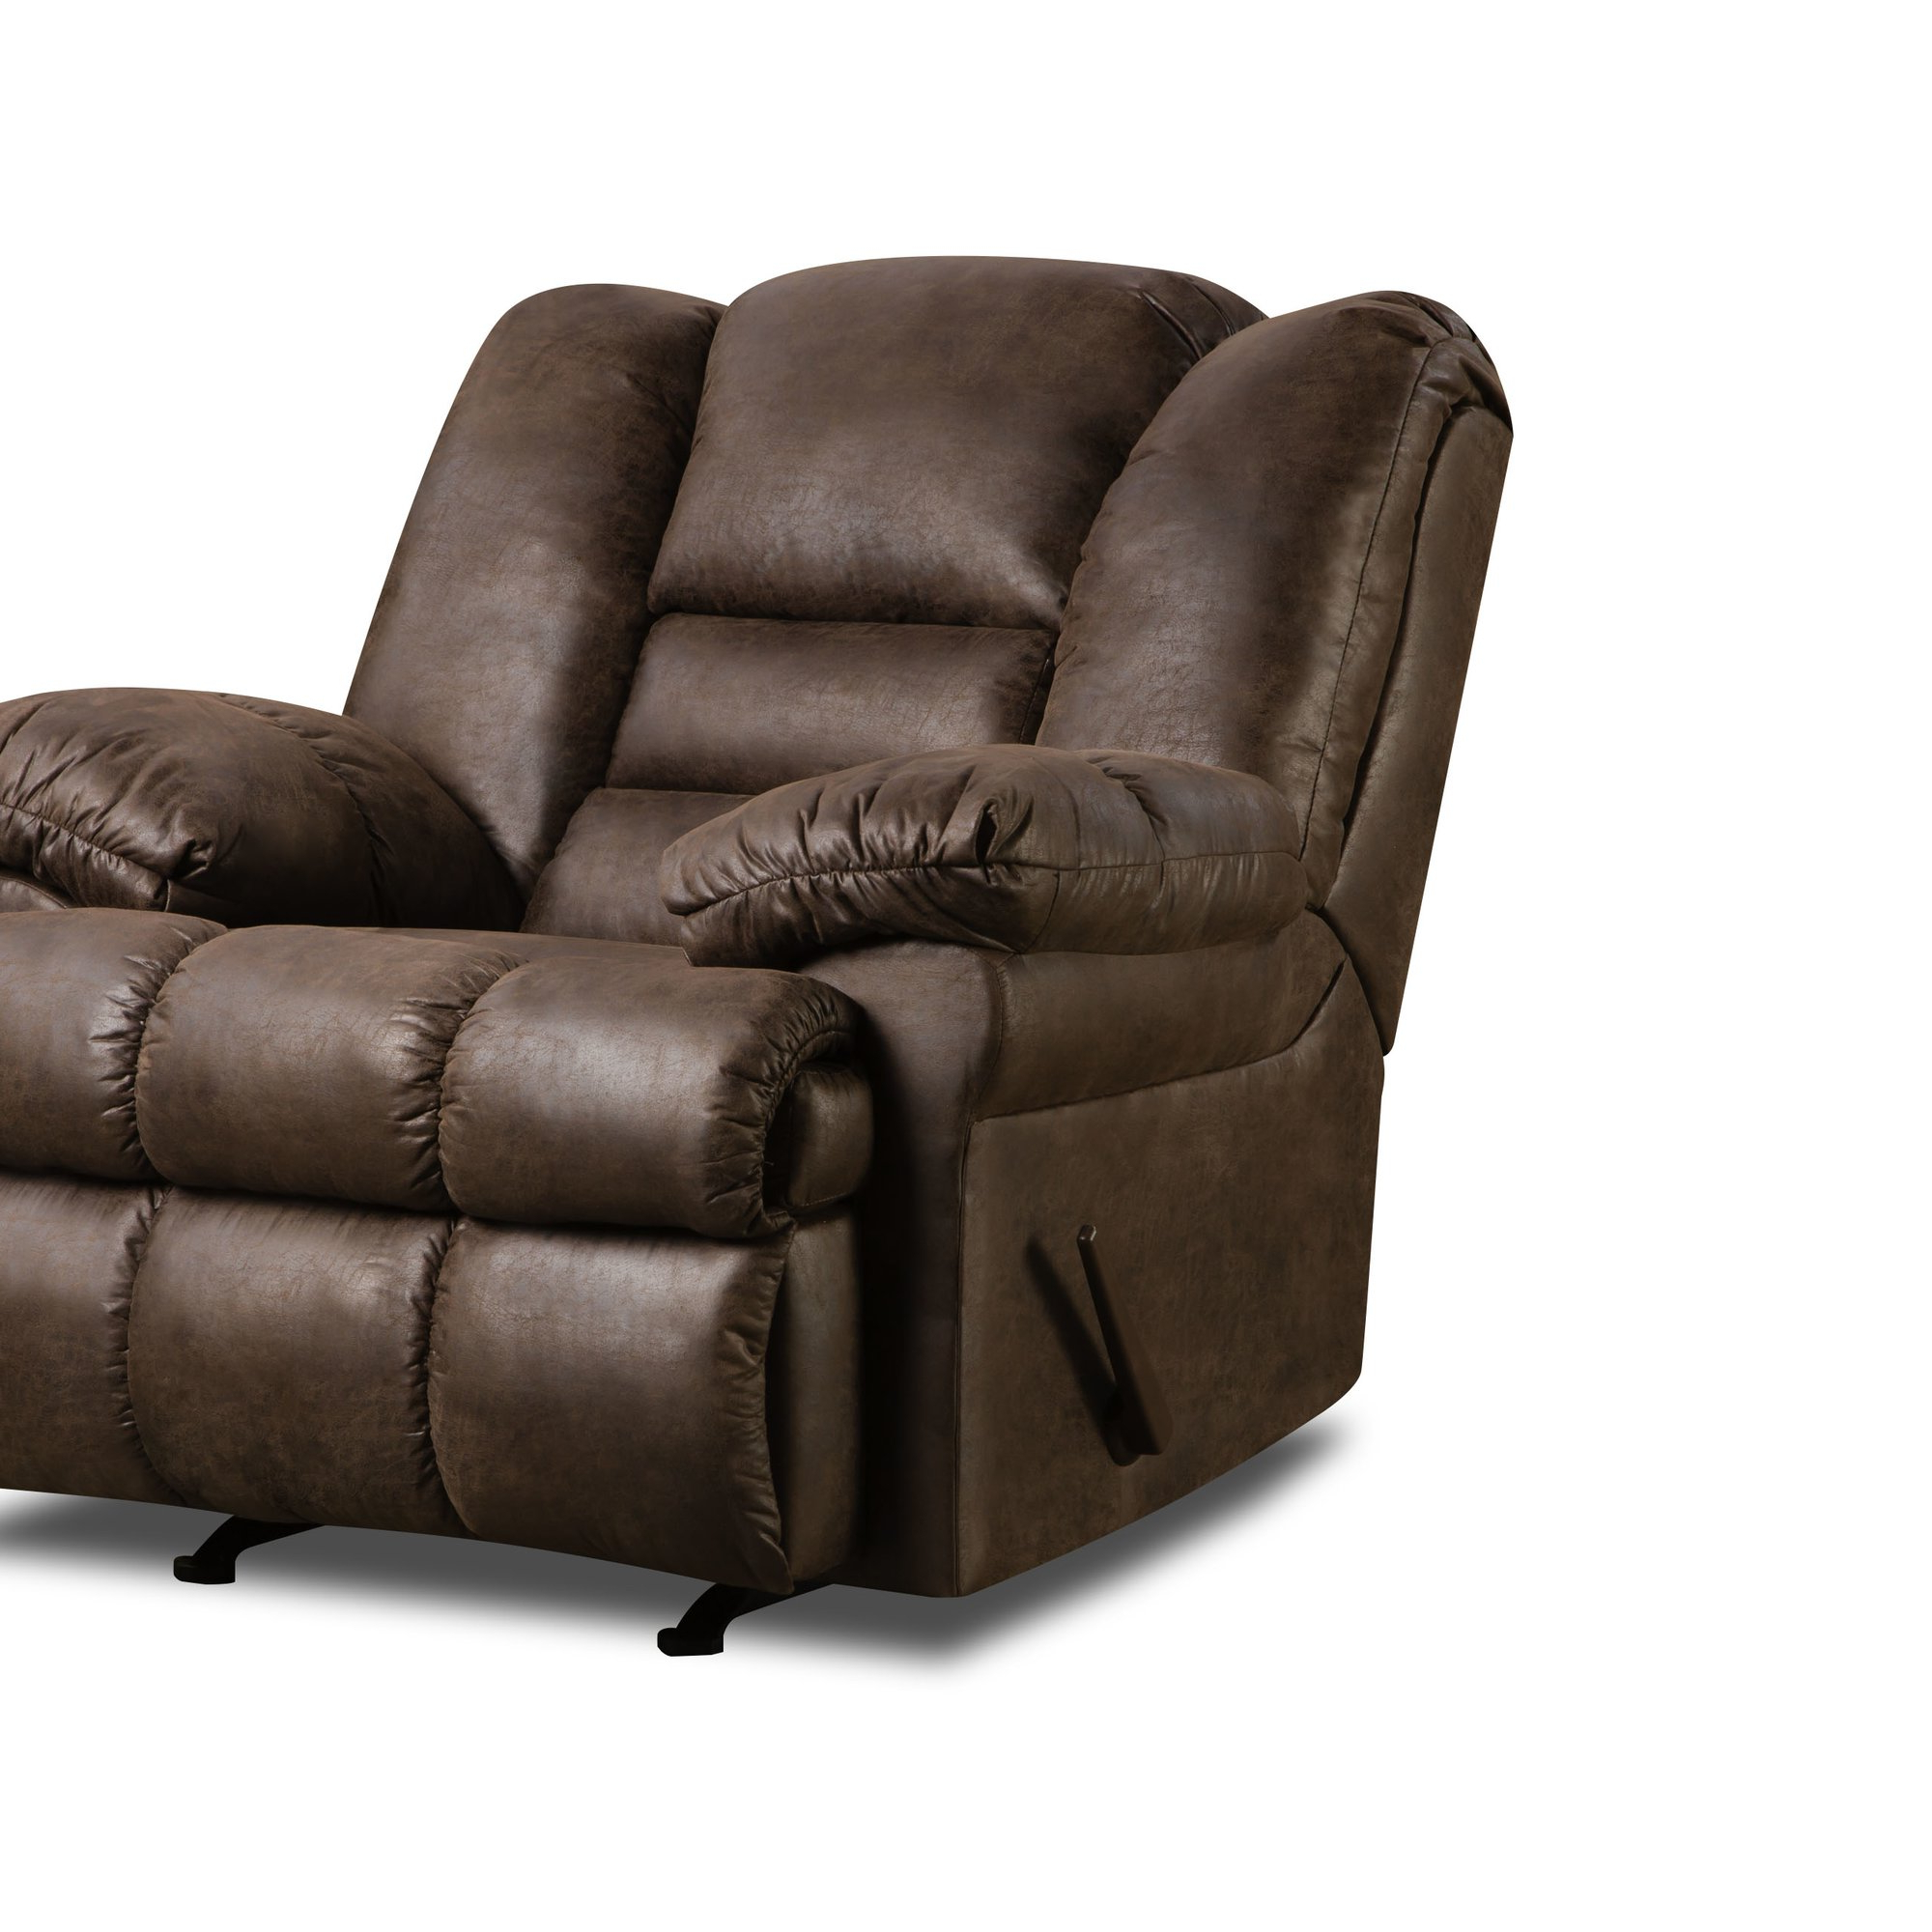 Favorite Rogan Leather Cafe Latte Swivel Glider Recliners Throughout Furniture: Surprising Simmons Recliners For Contemporary Living Room (Gallery 13 of 20)